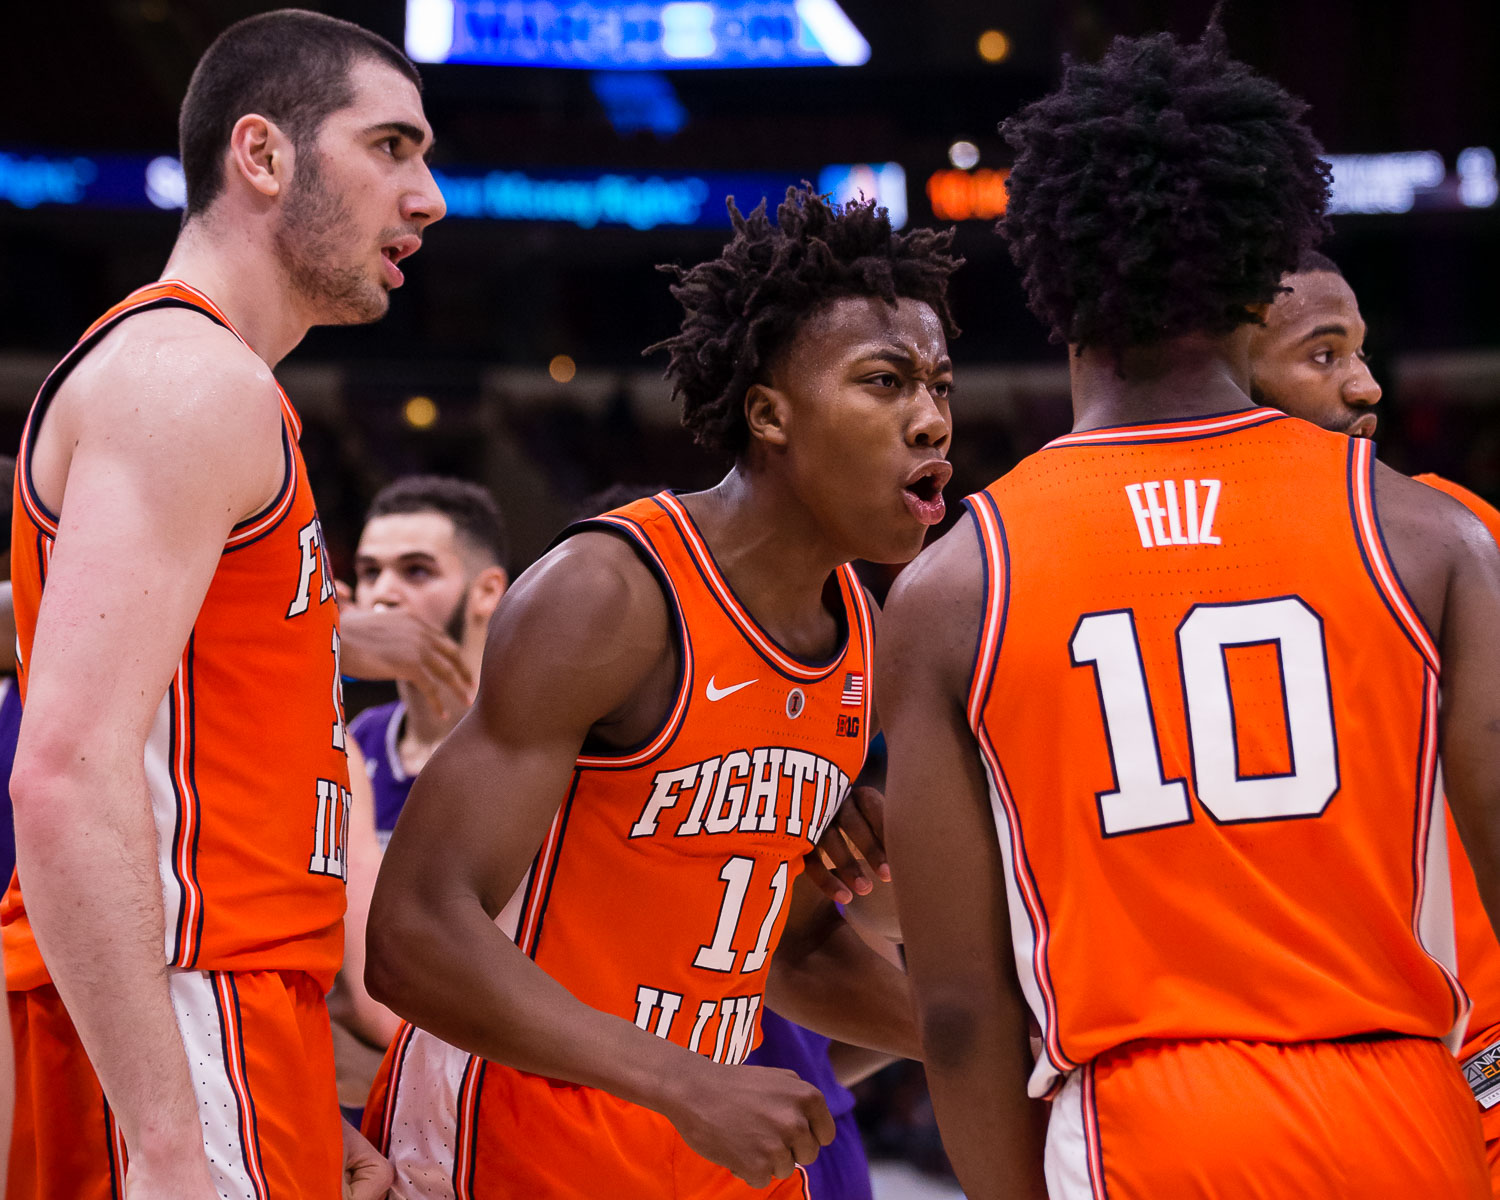 Illinois+guard+Ayo+Dosunmu+%28center%29+celebrates+with+guard+Andres+Feliz+%28right%29+during+the+game+against+Northwestern+in+the+first+round+of+the+Big+Ten+Tournament+at+the+United+Center+on+Wednesday.